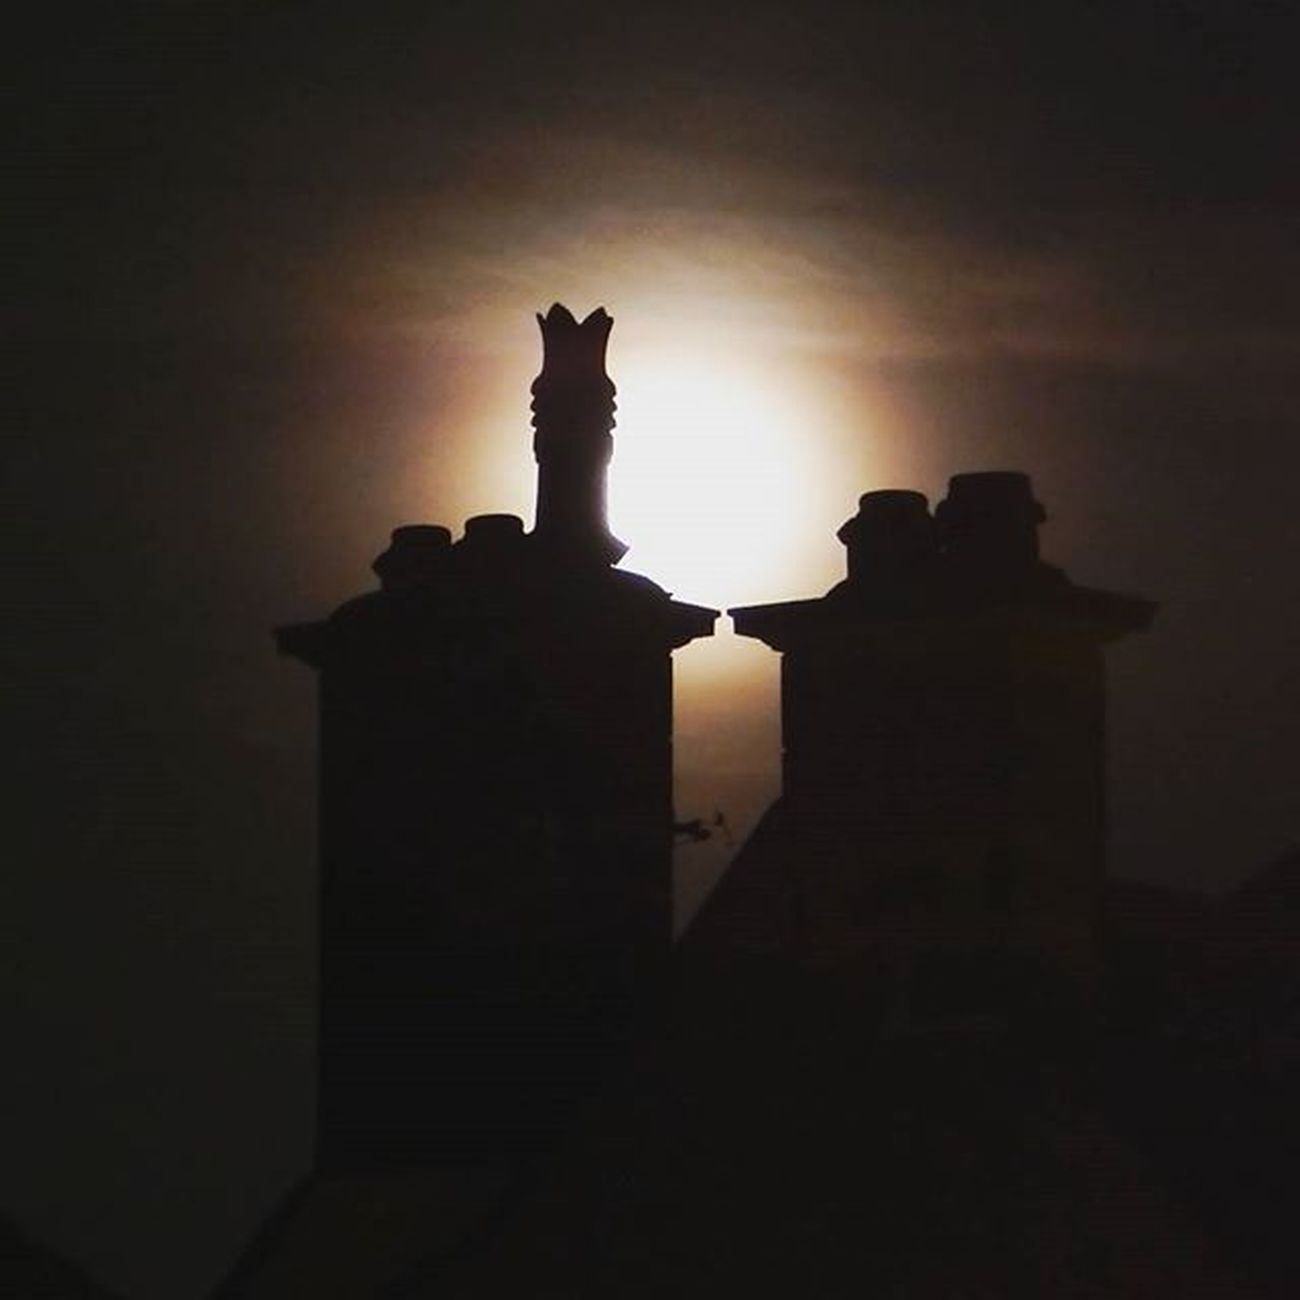 Bloodmoonrising Bloodmoon Lunar Moon Lunareclipseuk Chimneystack Northeastcaptures NORTHEASTENGLAND